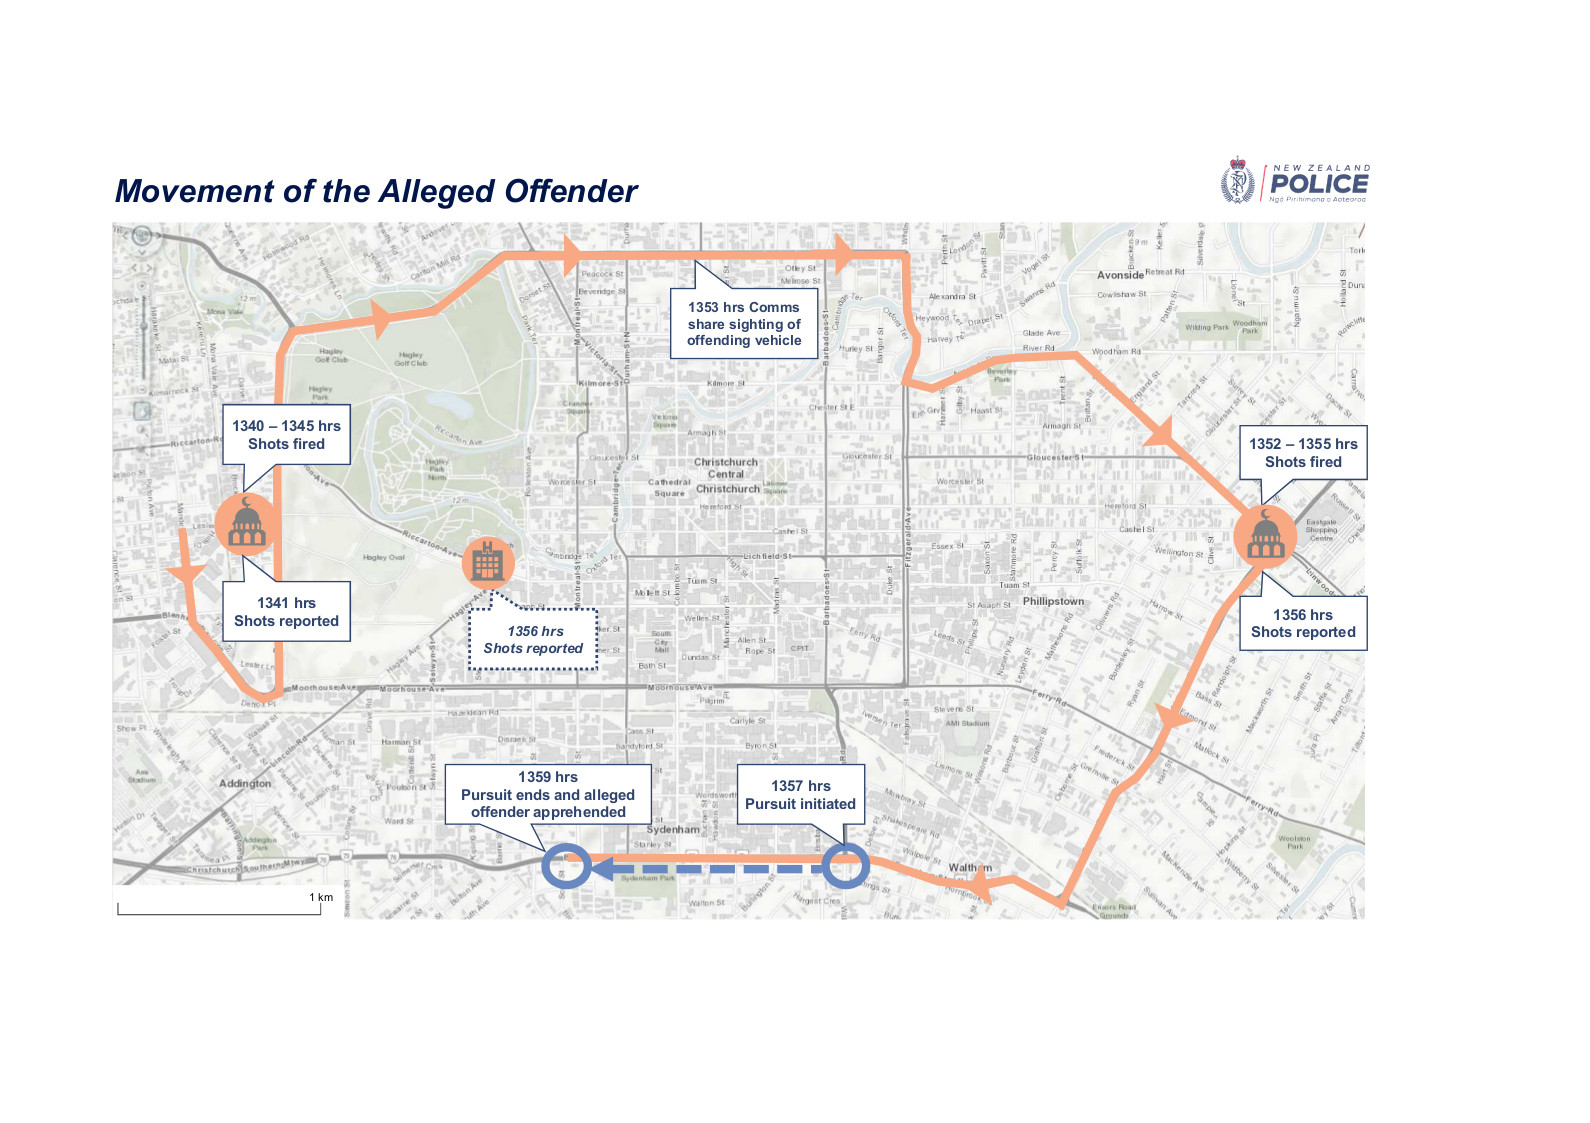 a police map showing events and times of the Christchurch mosque shootings and response